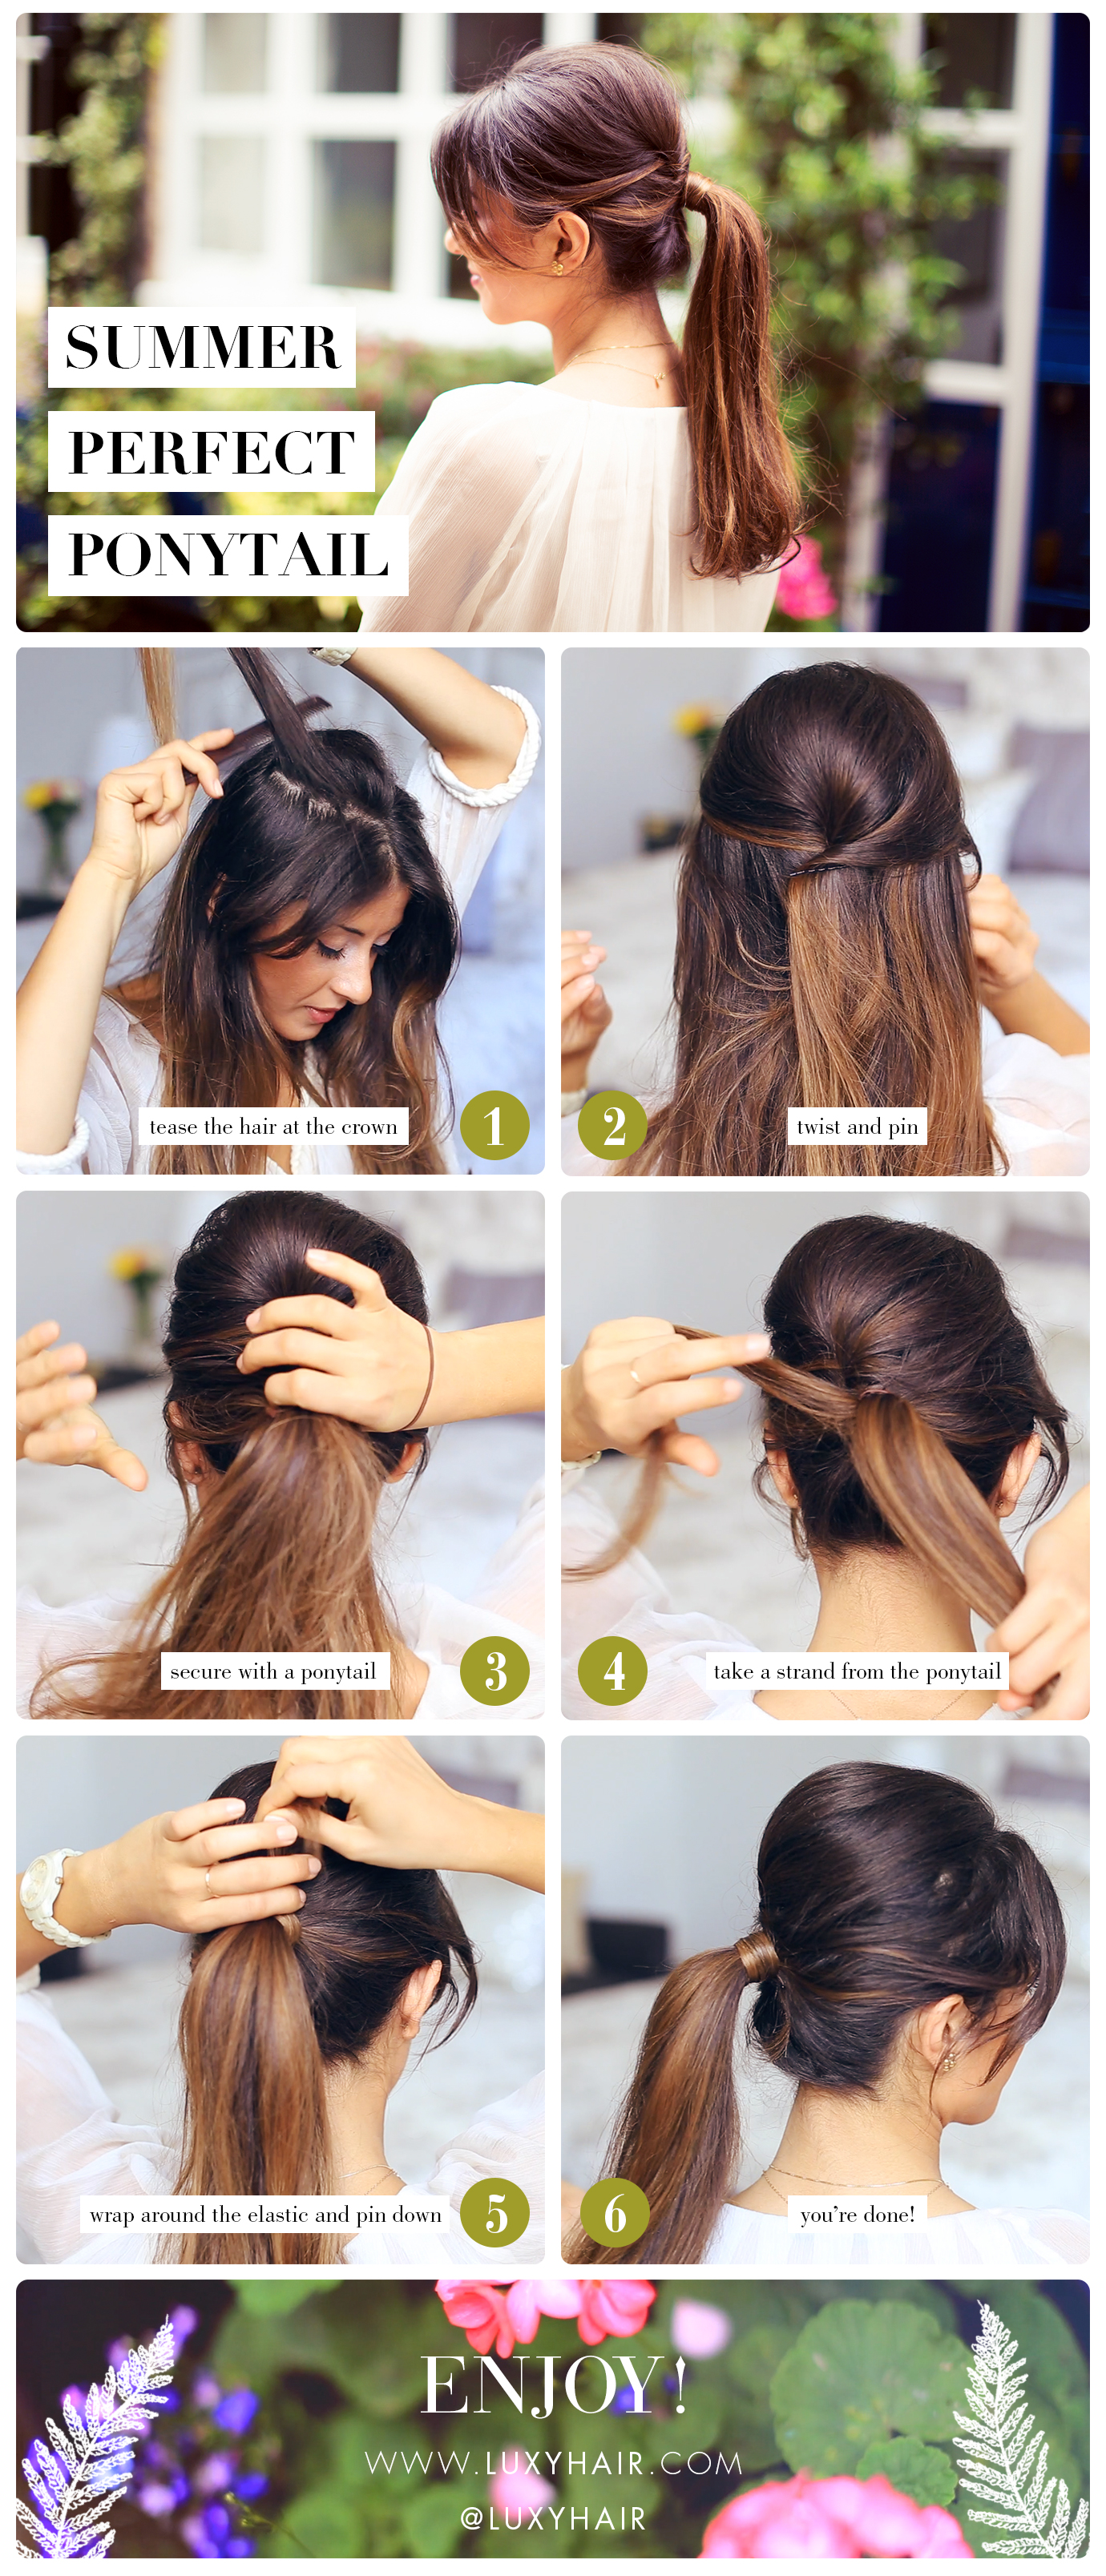 Step By Step Summer Perfect Ponytail Luxy Hair Blog All About Hair